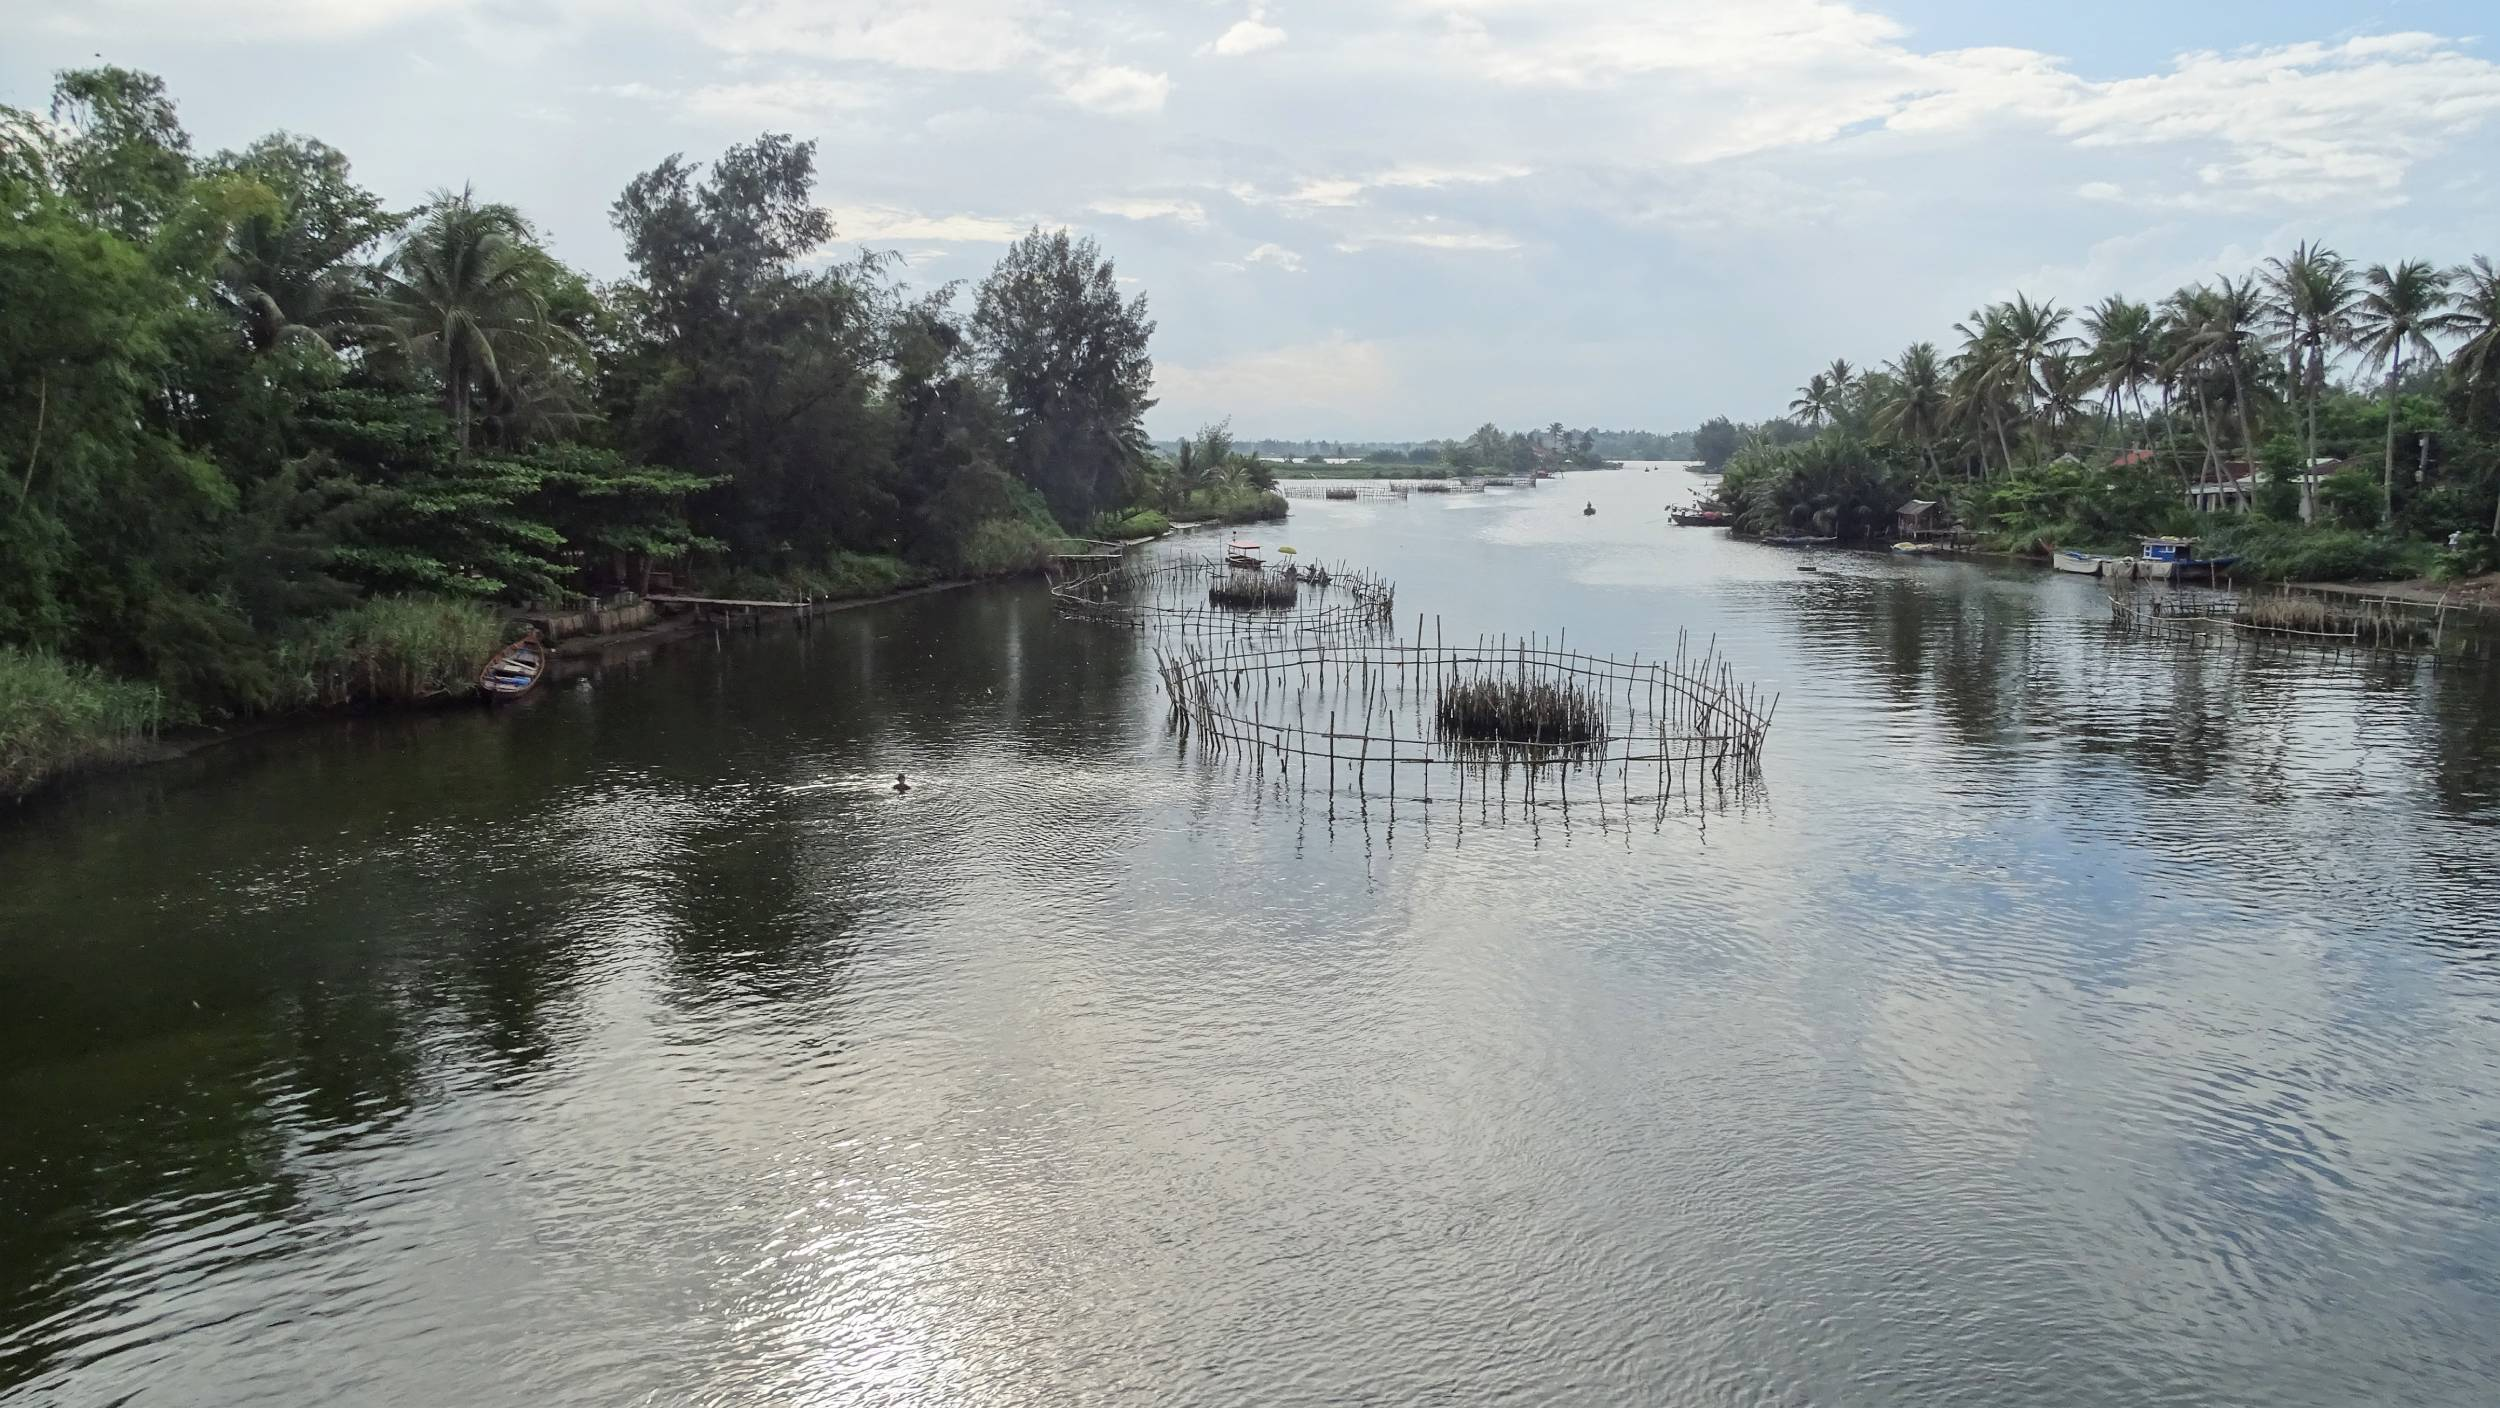 A large circular fishing trap in the middle of a small river